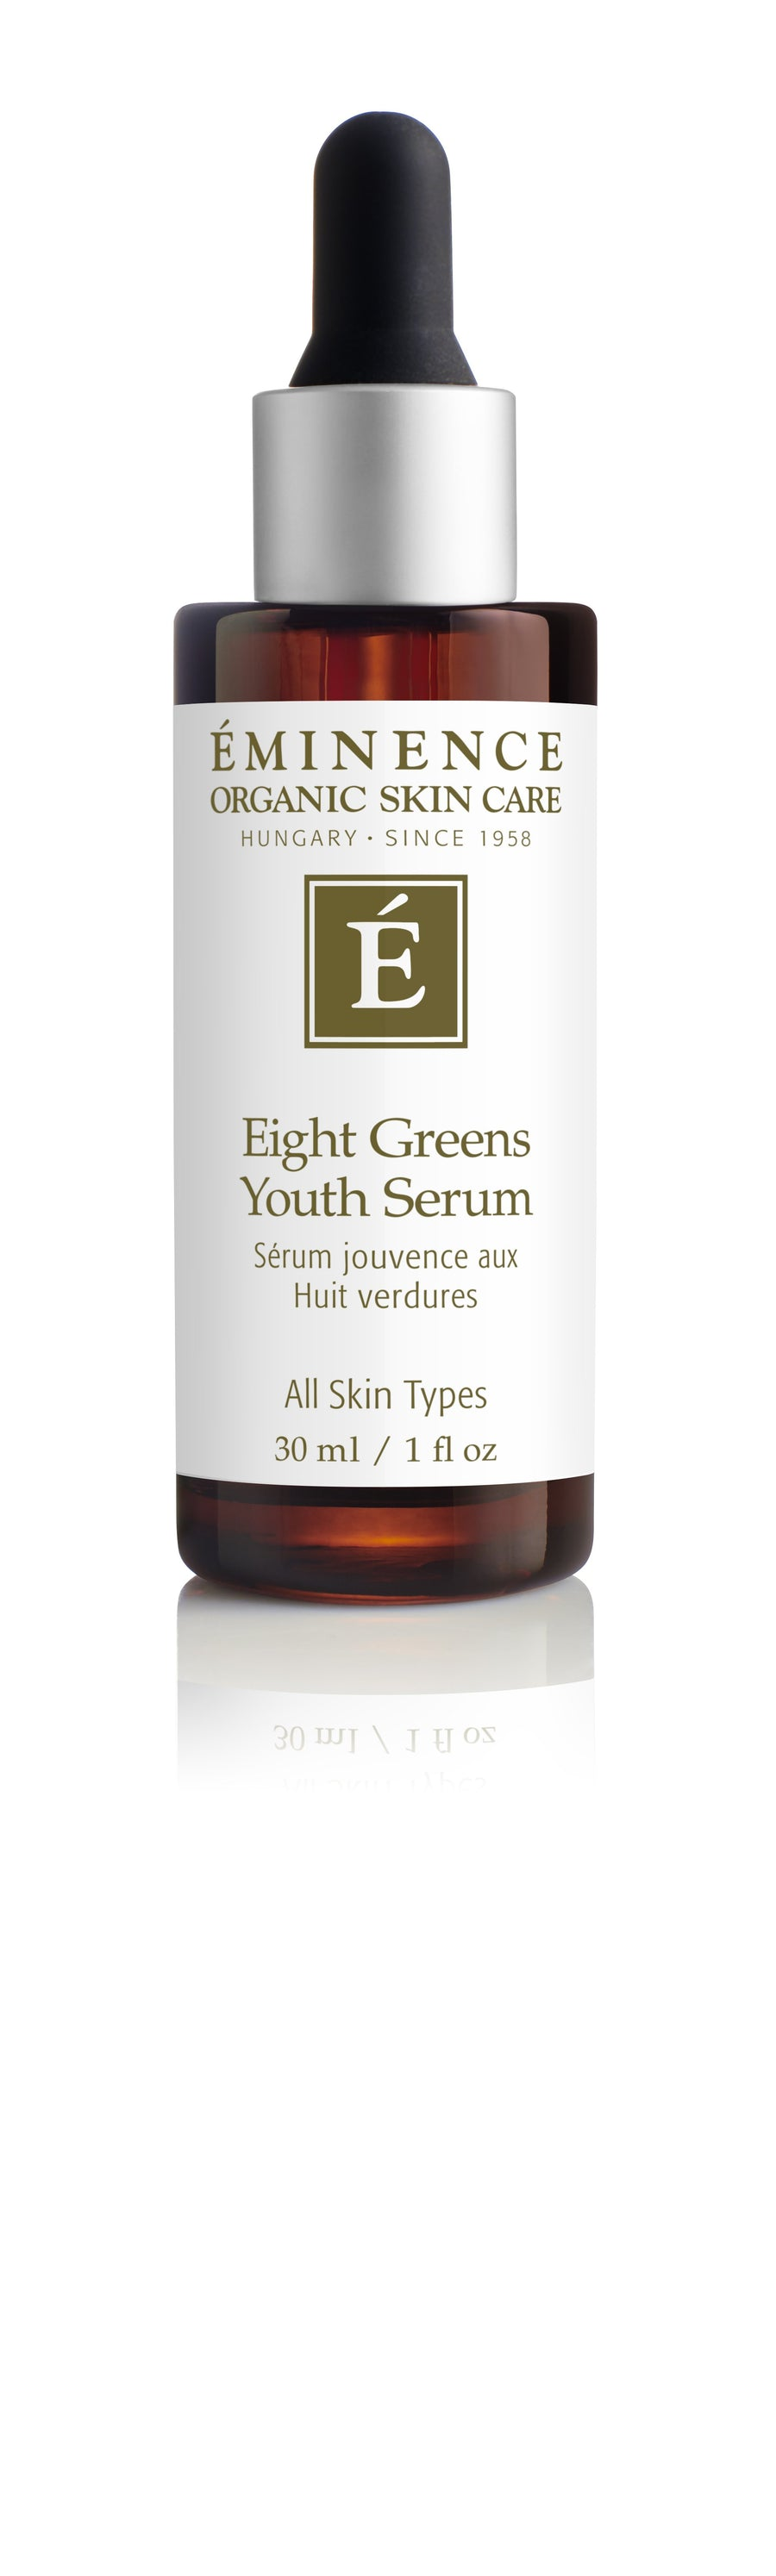 Eminence Organics Eight Greens Youth Serum